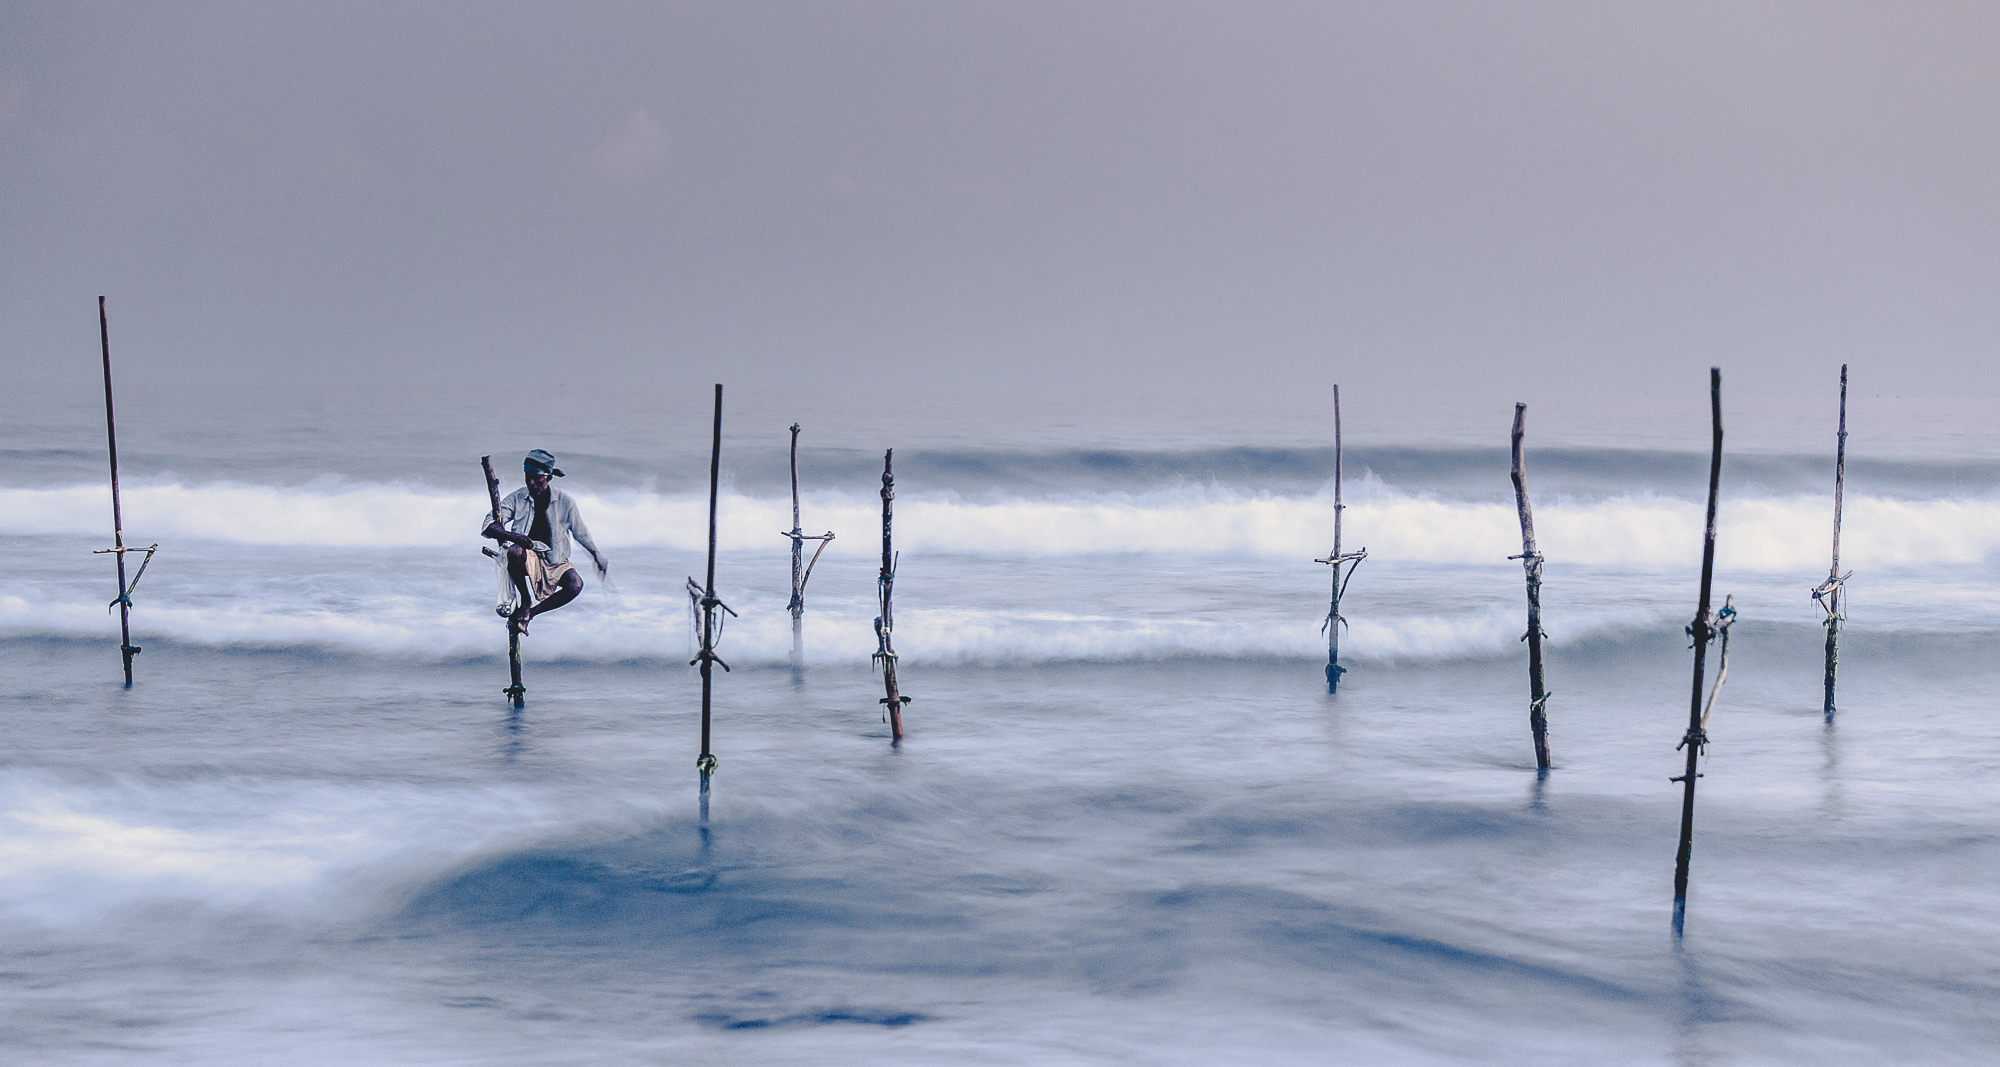 Fisherman on his stilt